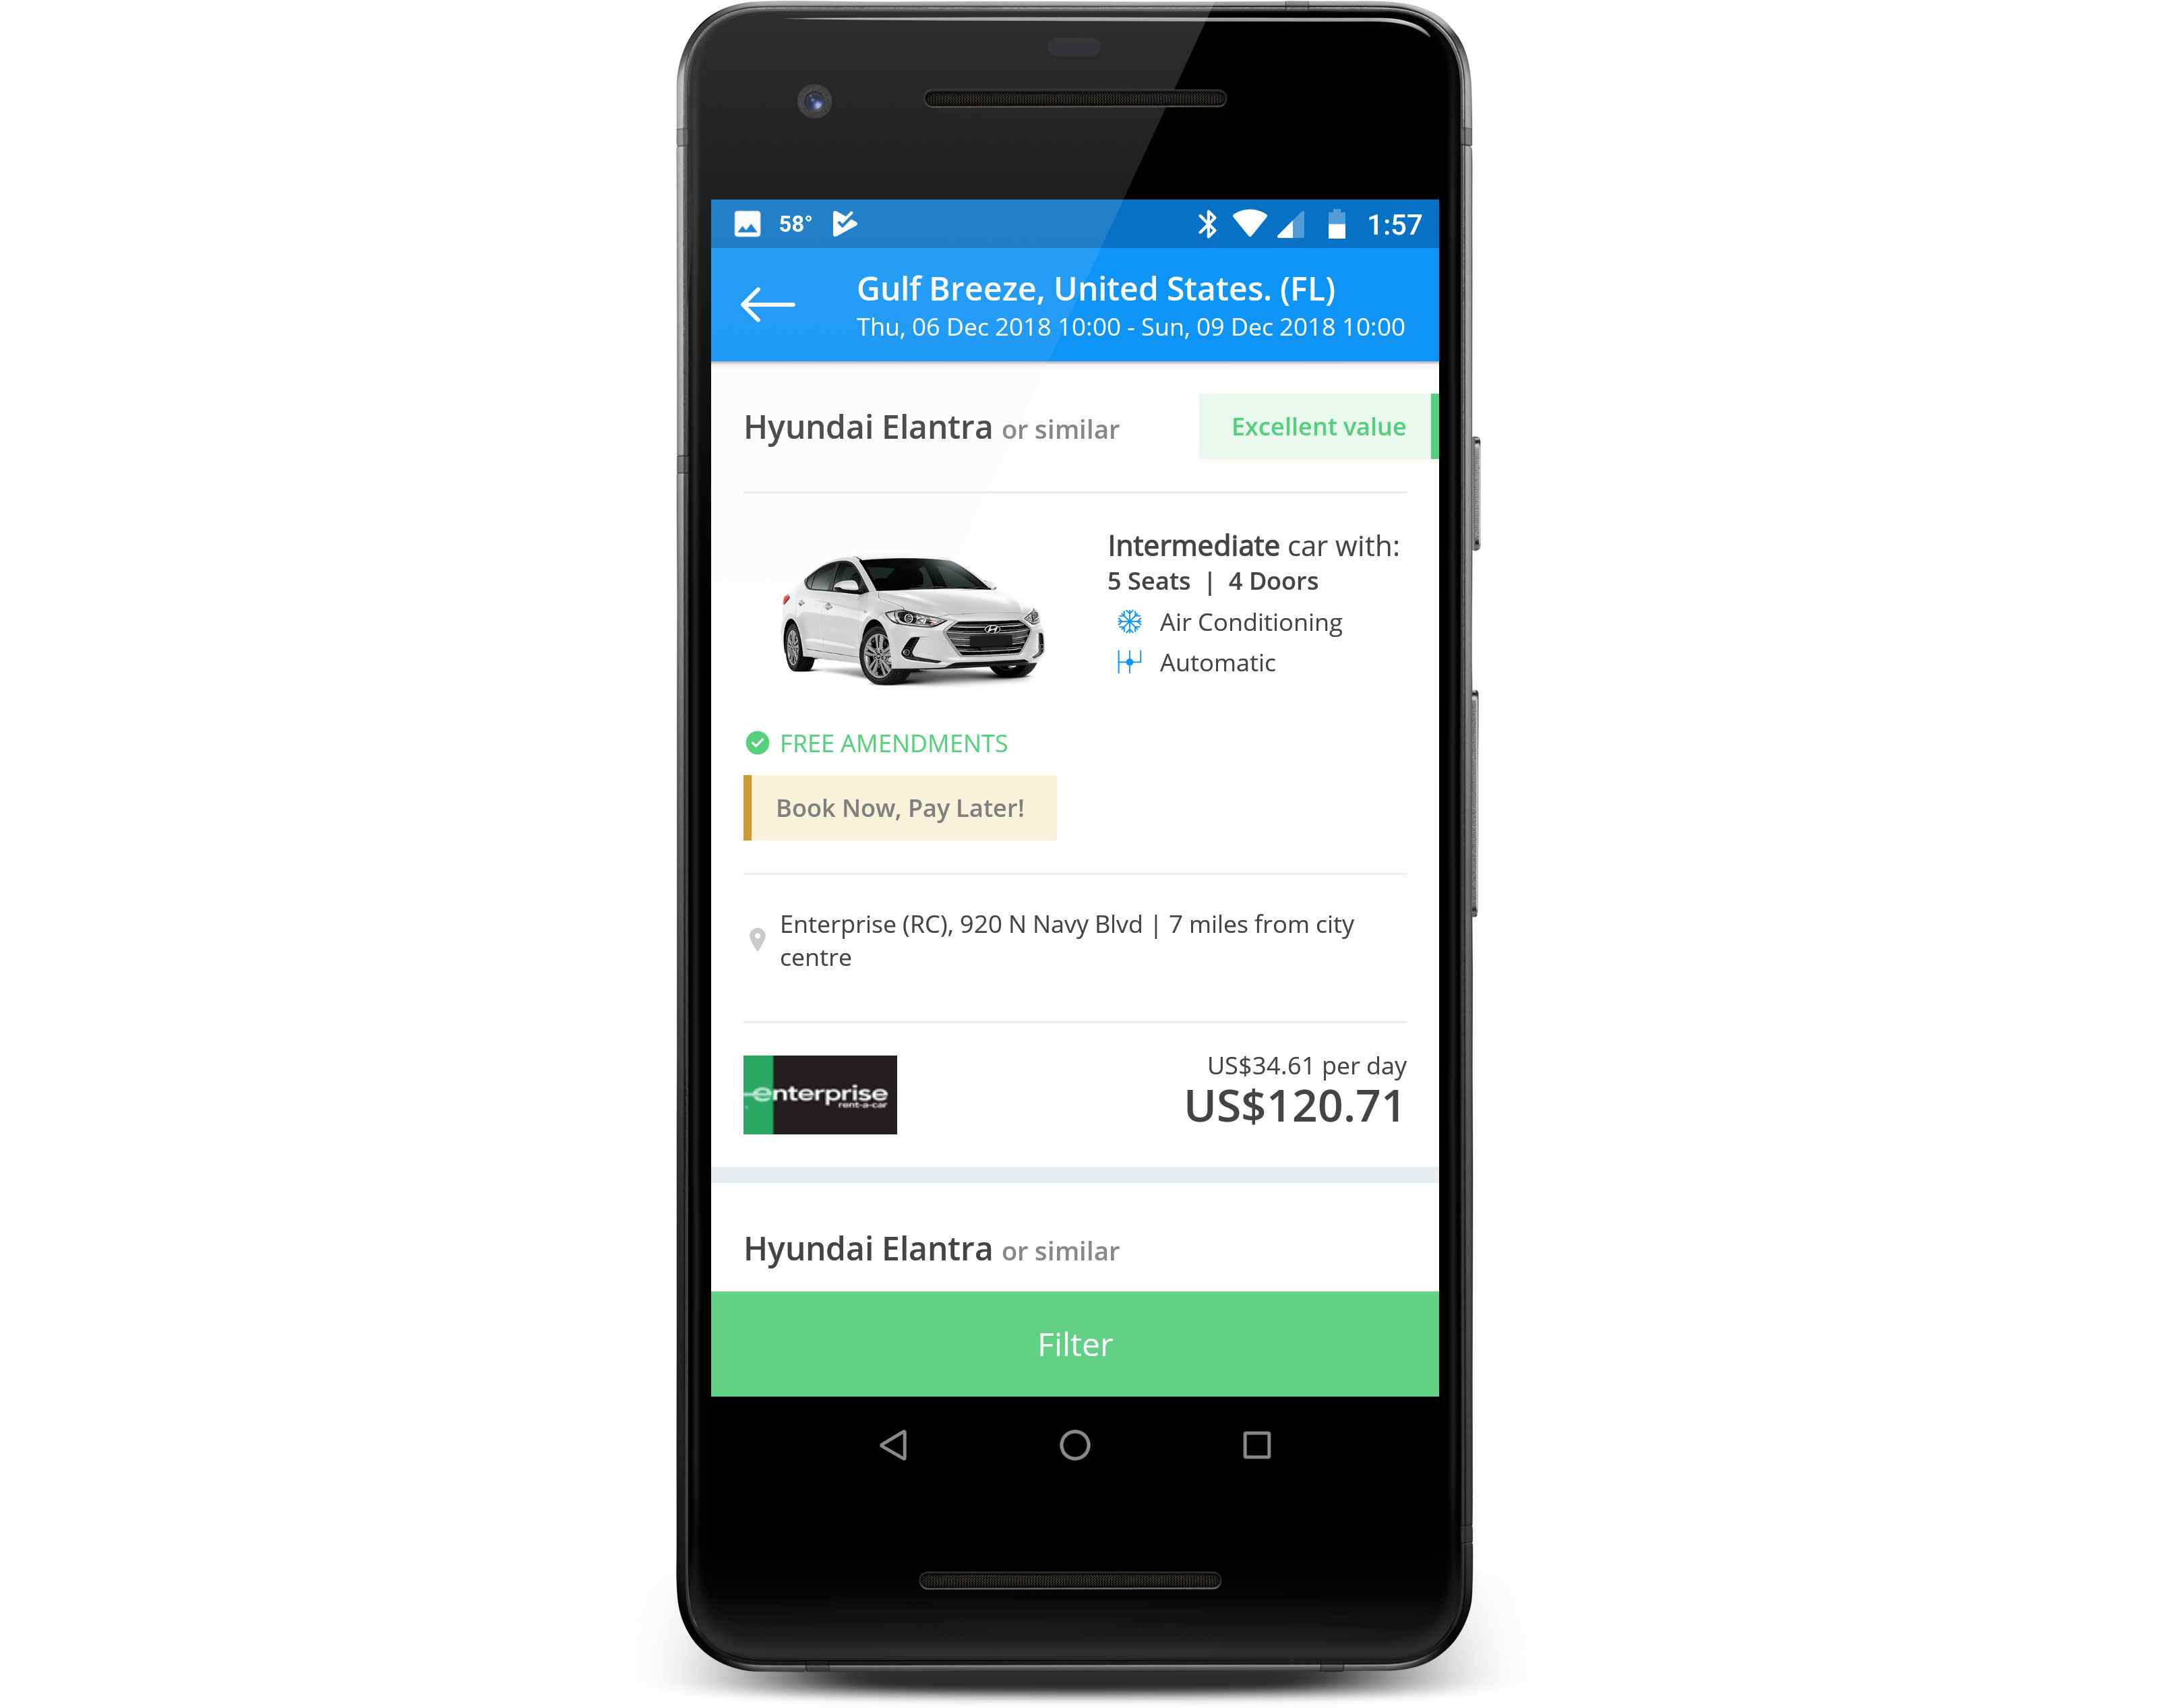 The Rentalcars.com app displayed on a phone